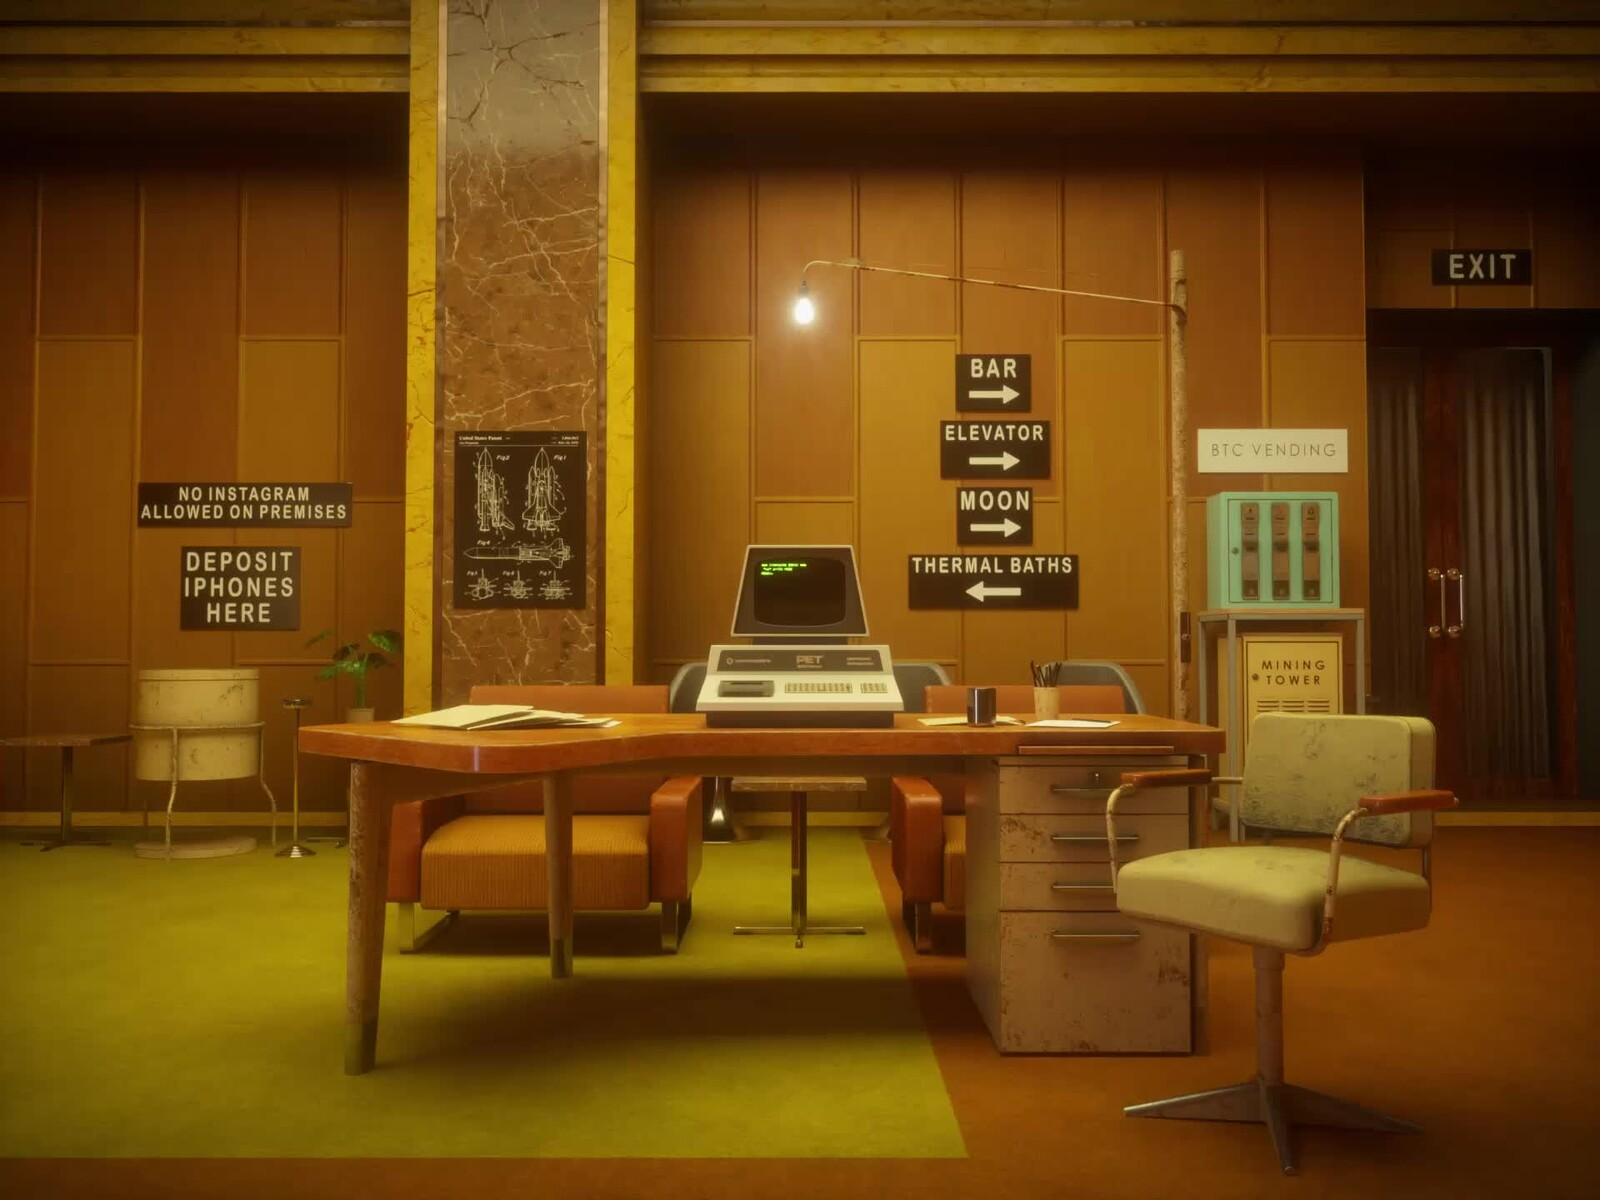 Space Age Office Design from 70s